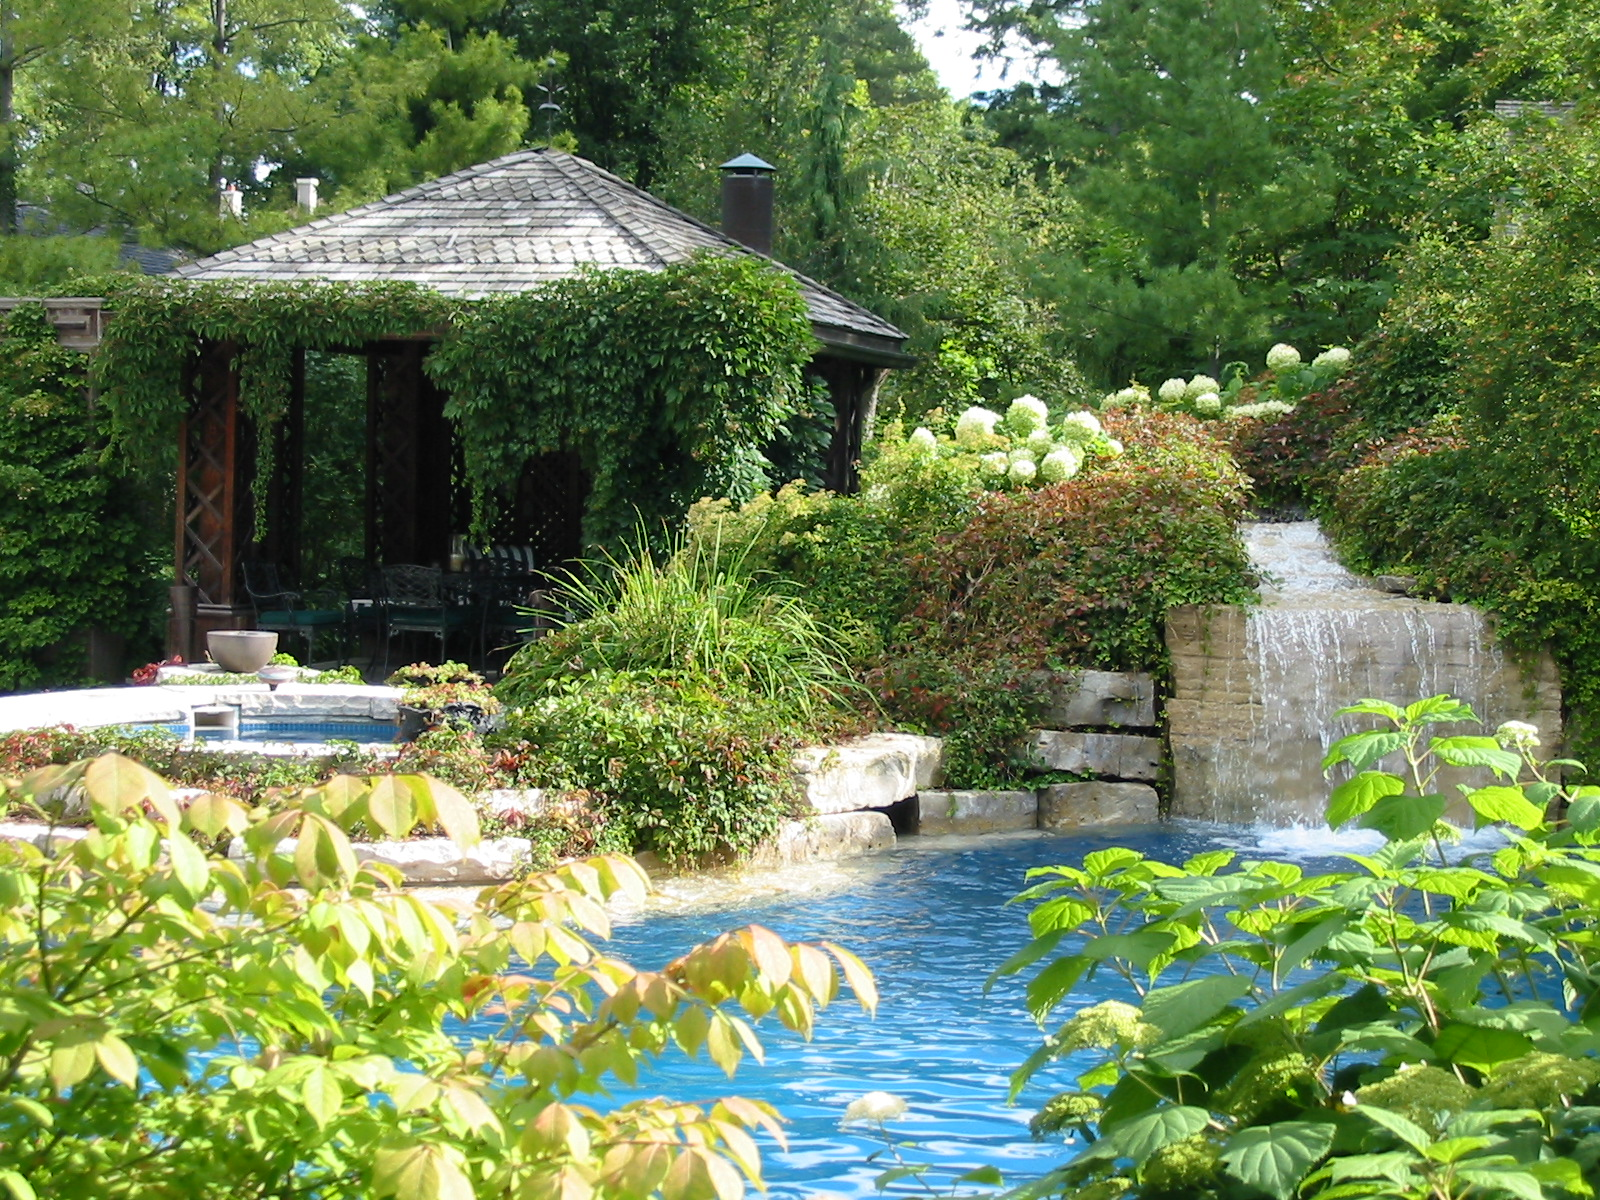 The backgarden pool house and waterfall